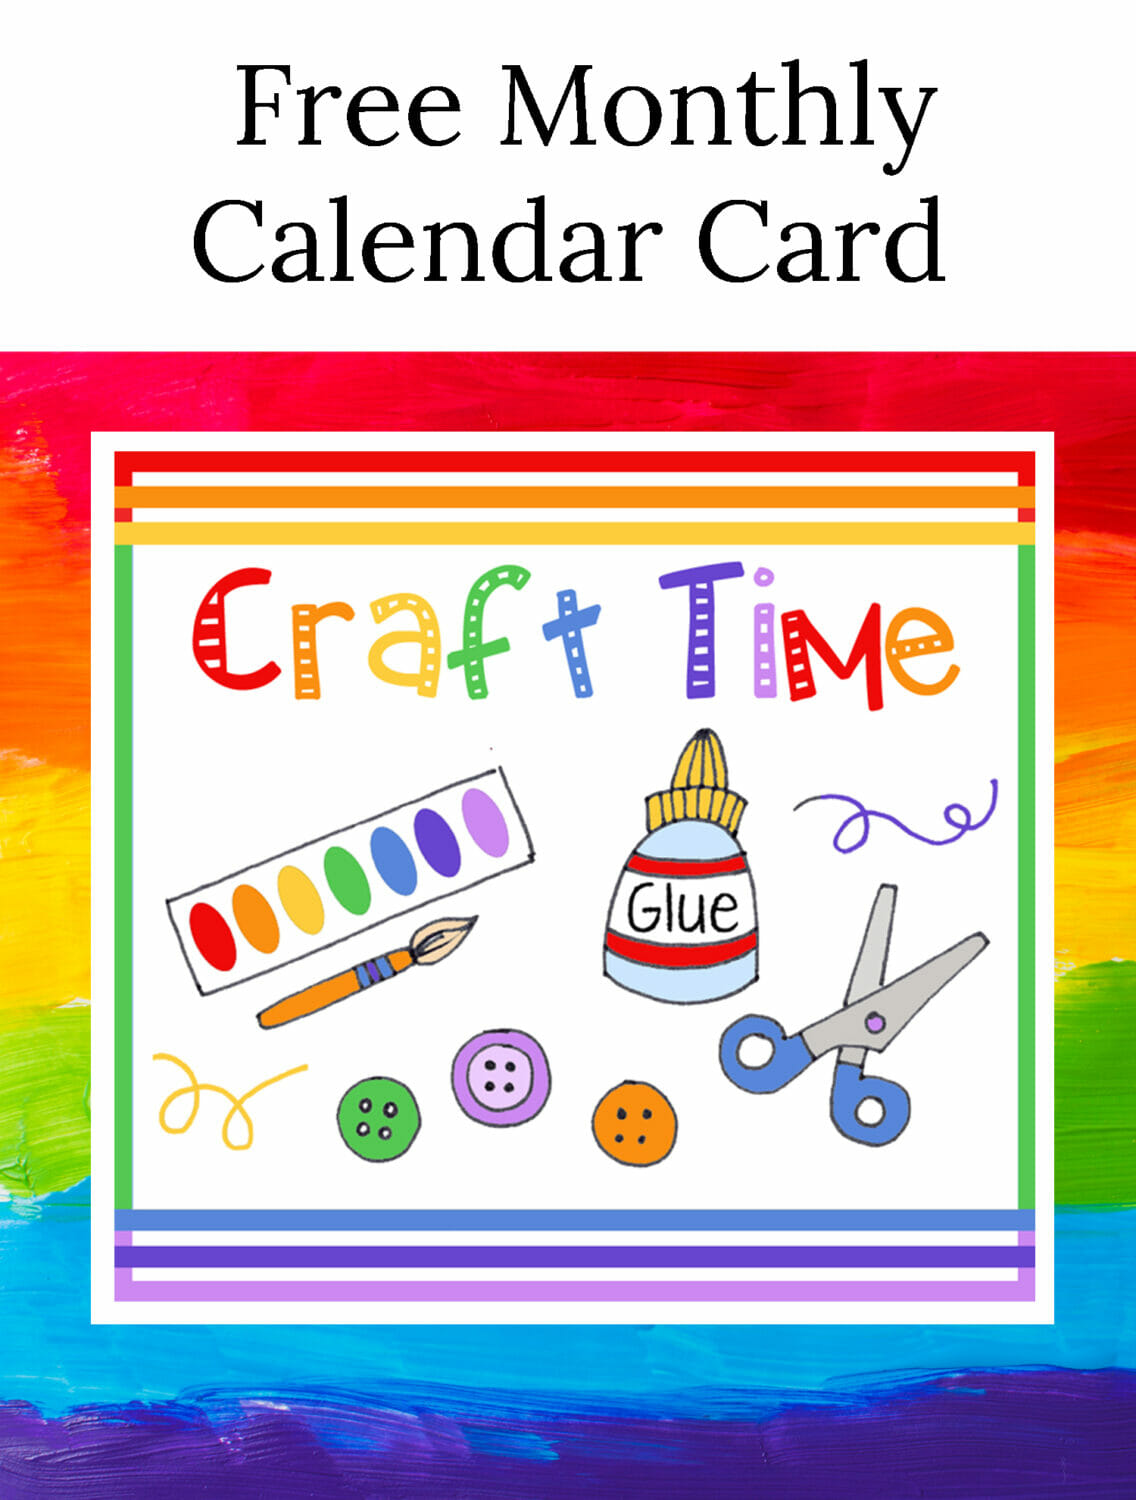 March Free Calendar Card is Craft Time